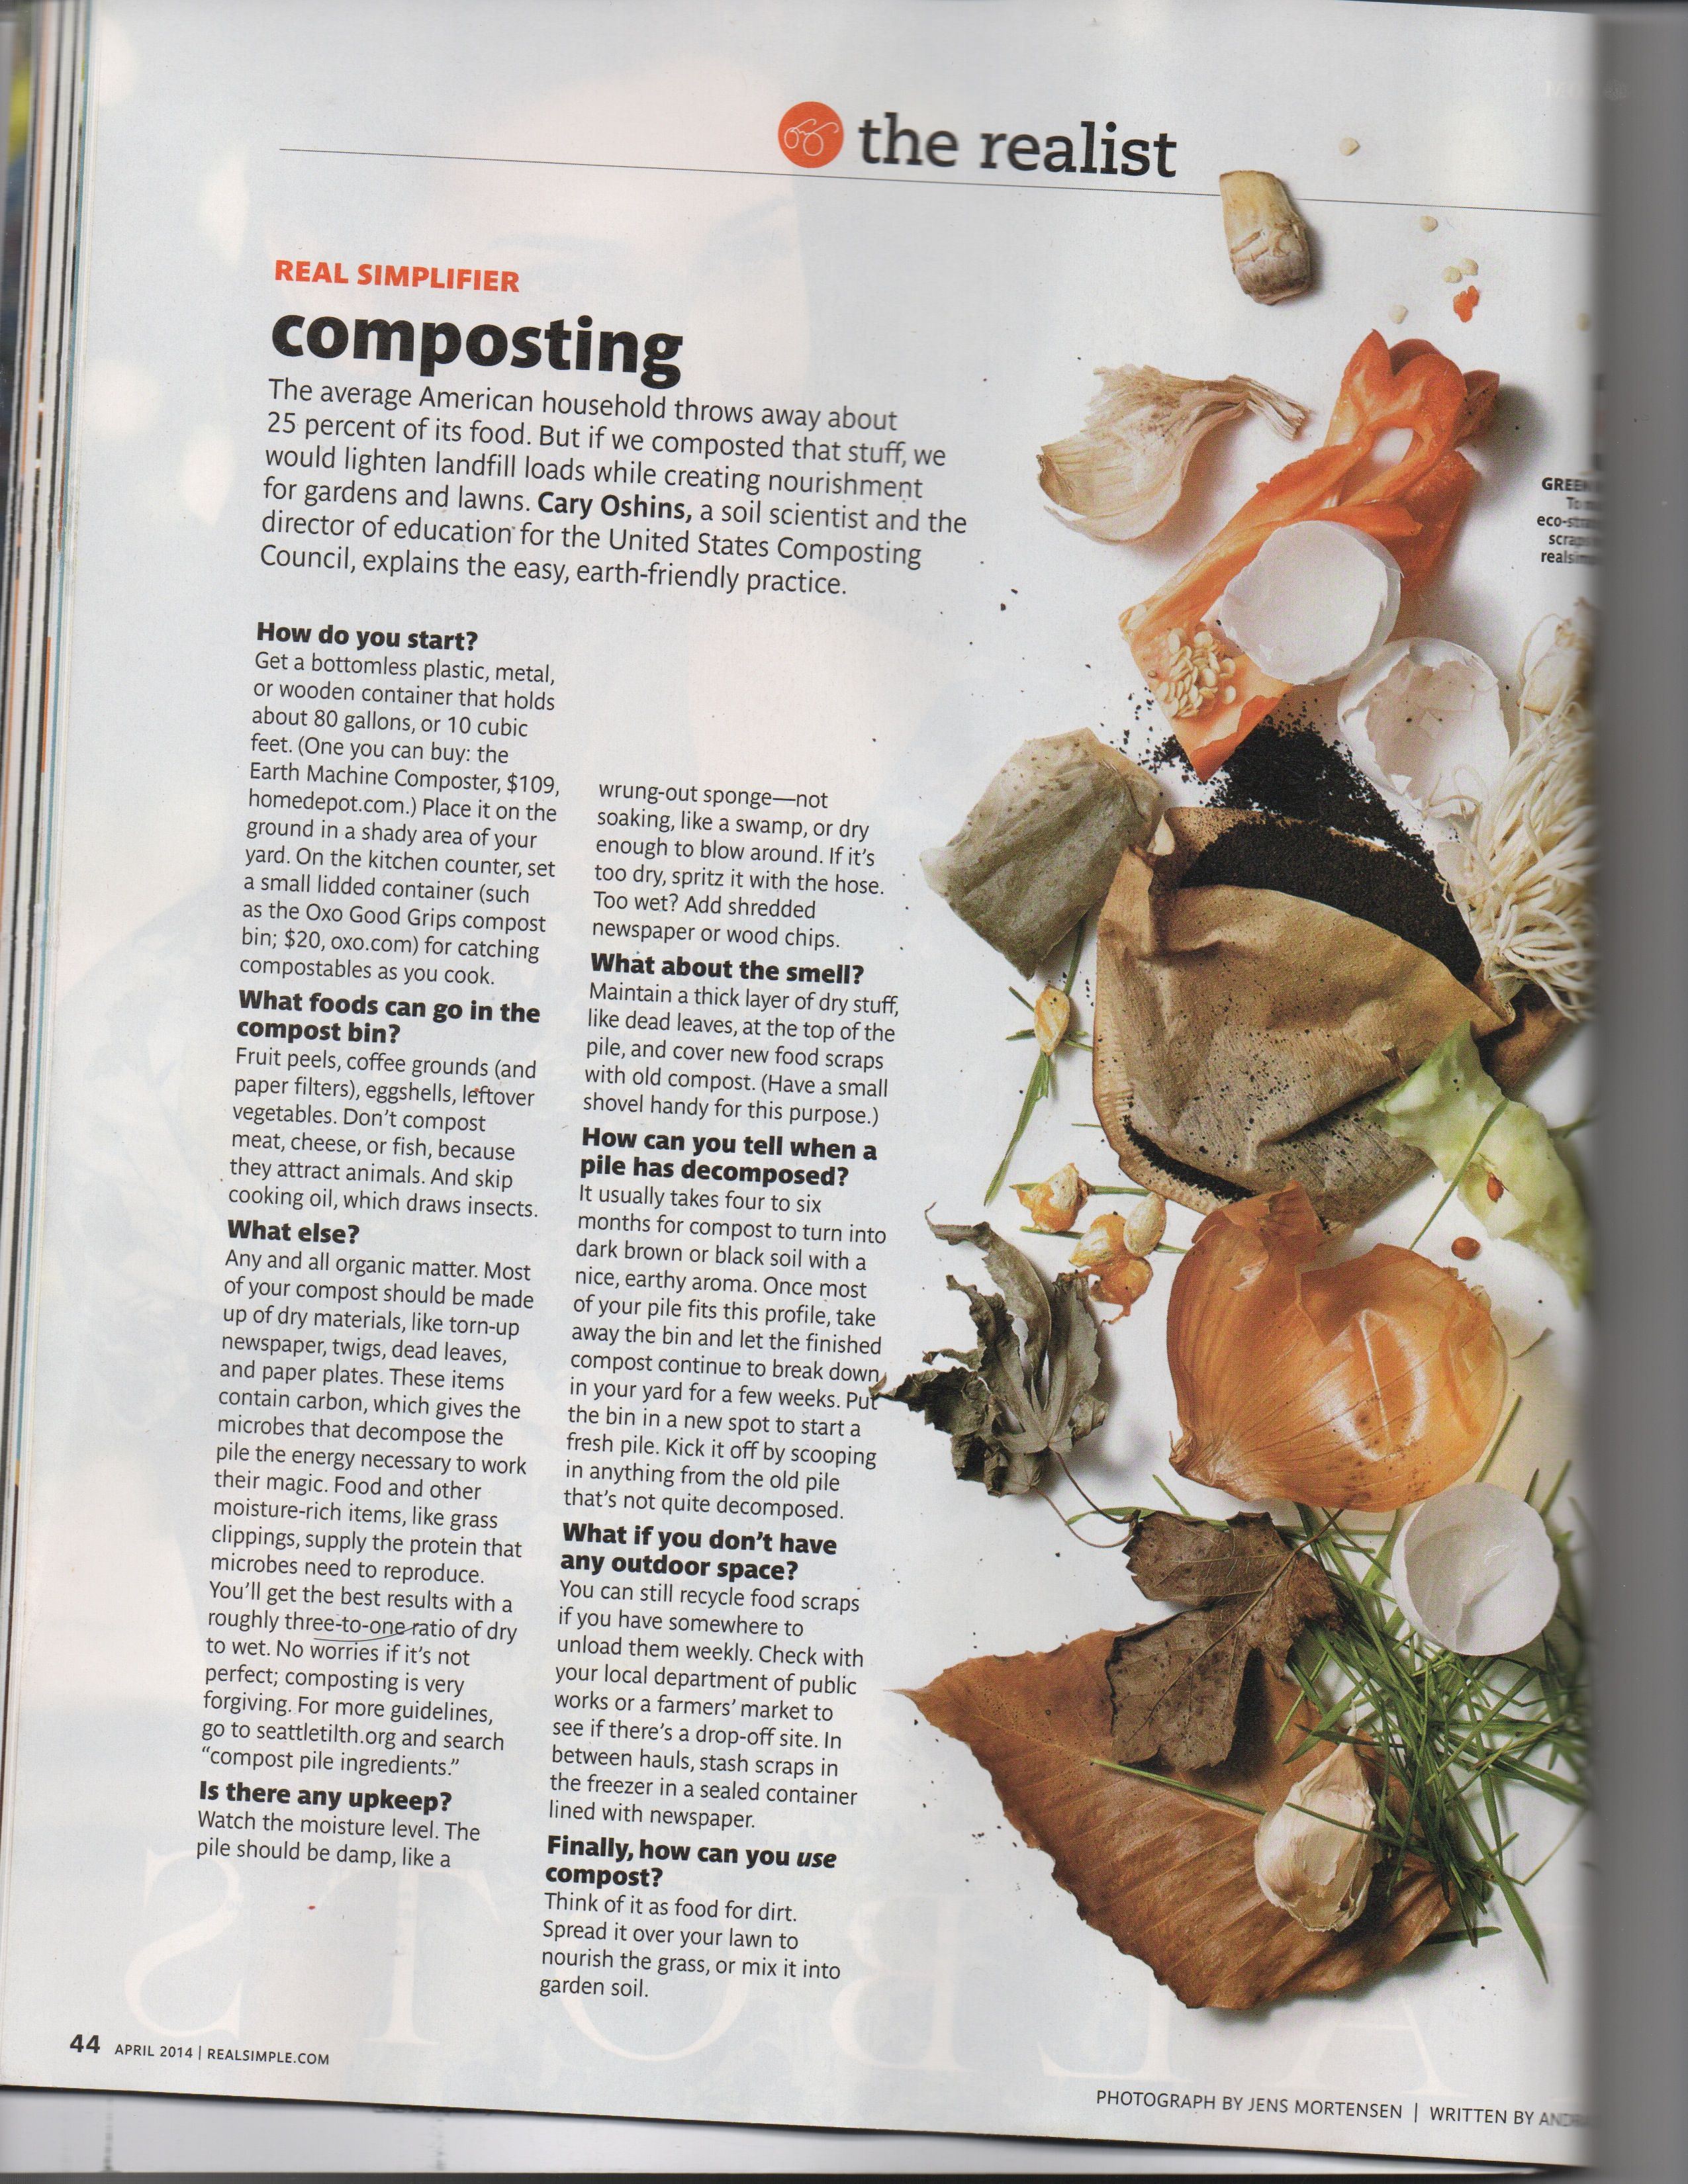 Composting tips to get started